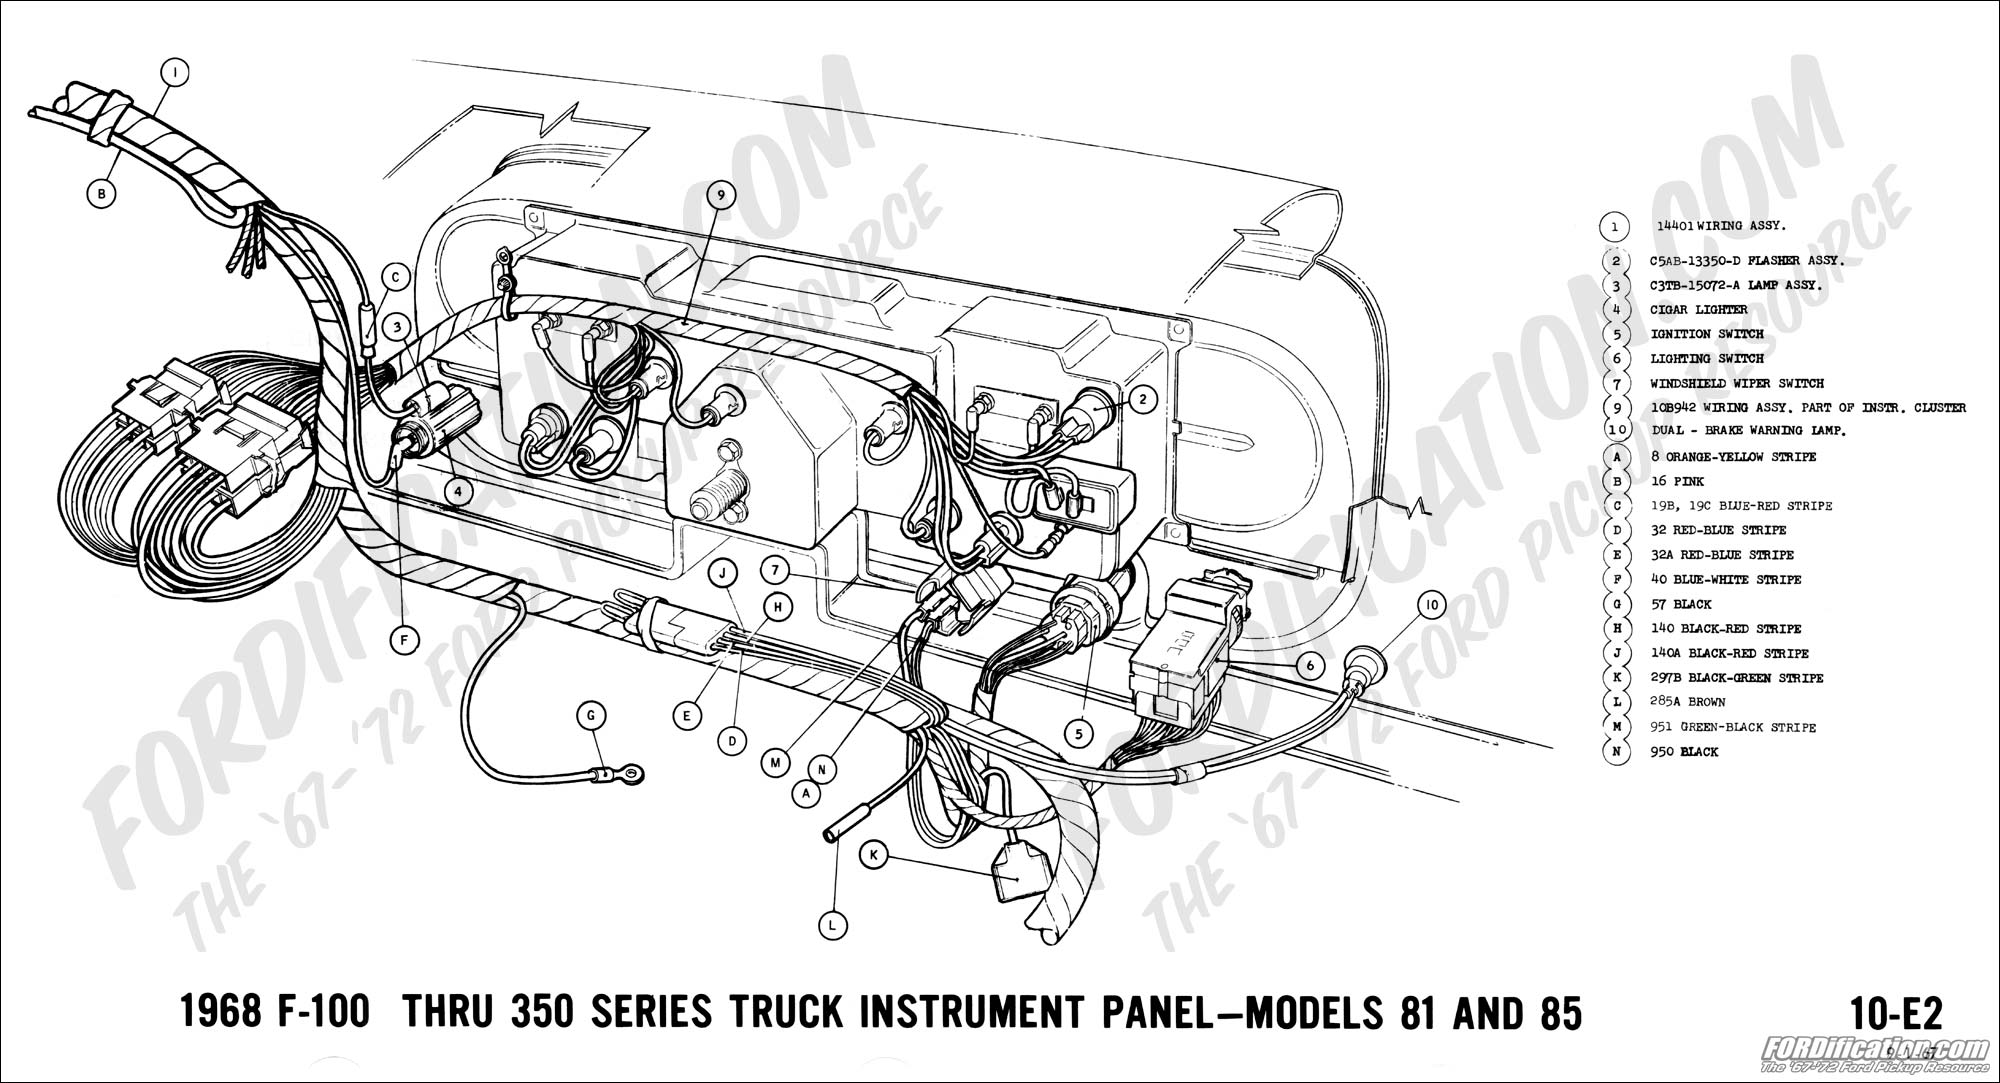 ... Wiring Manual - diagrams legend · 1968 F-100 thru F-350 instrument panel